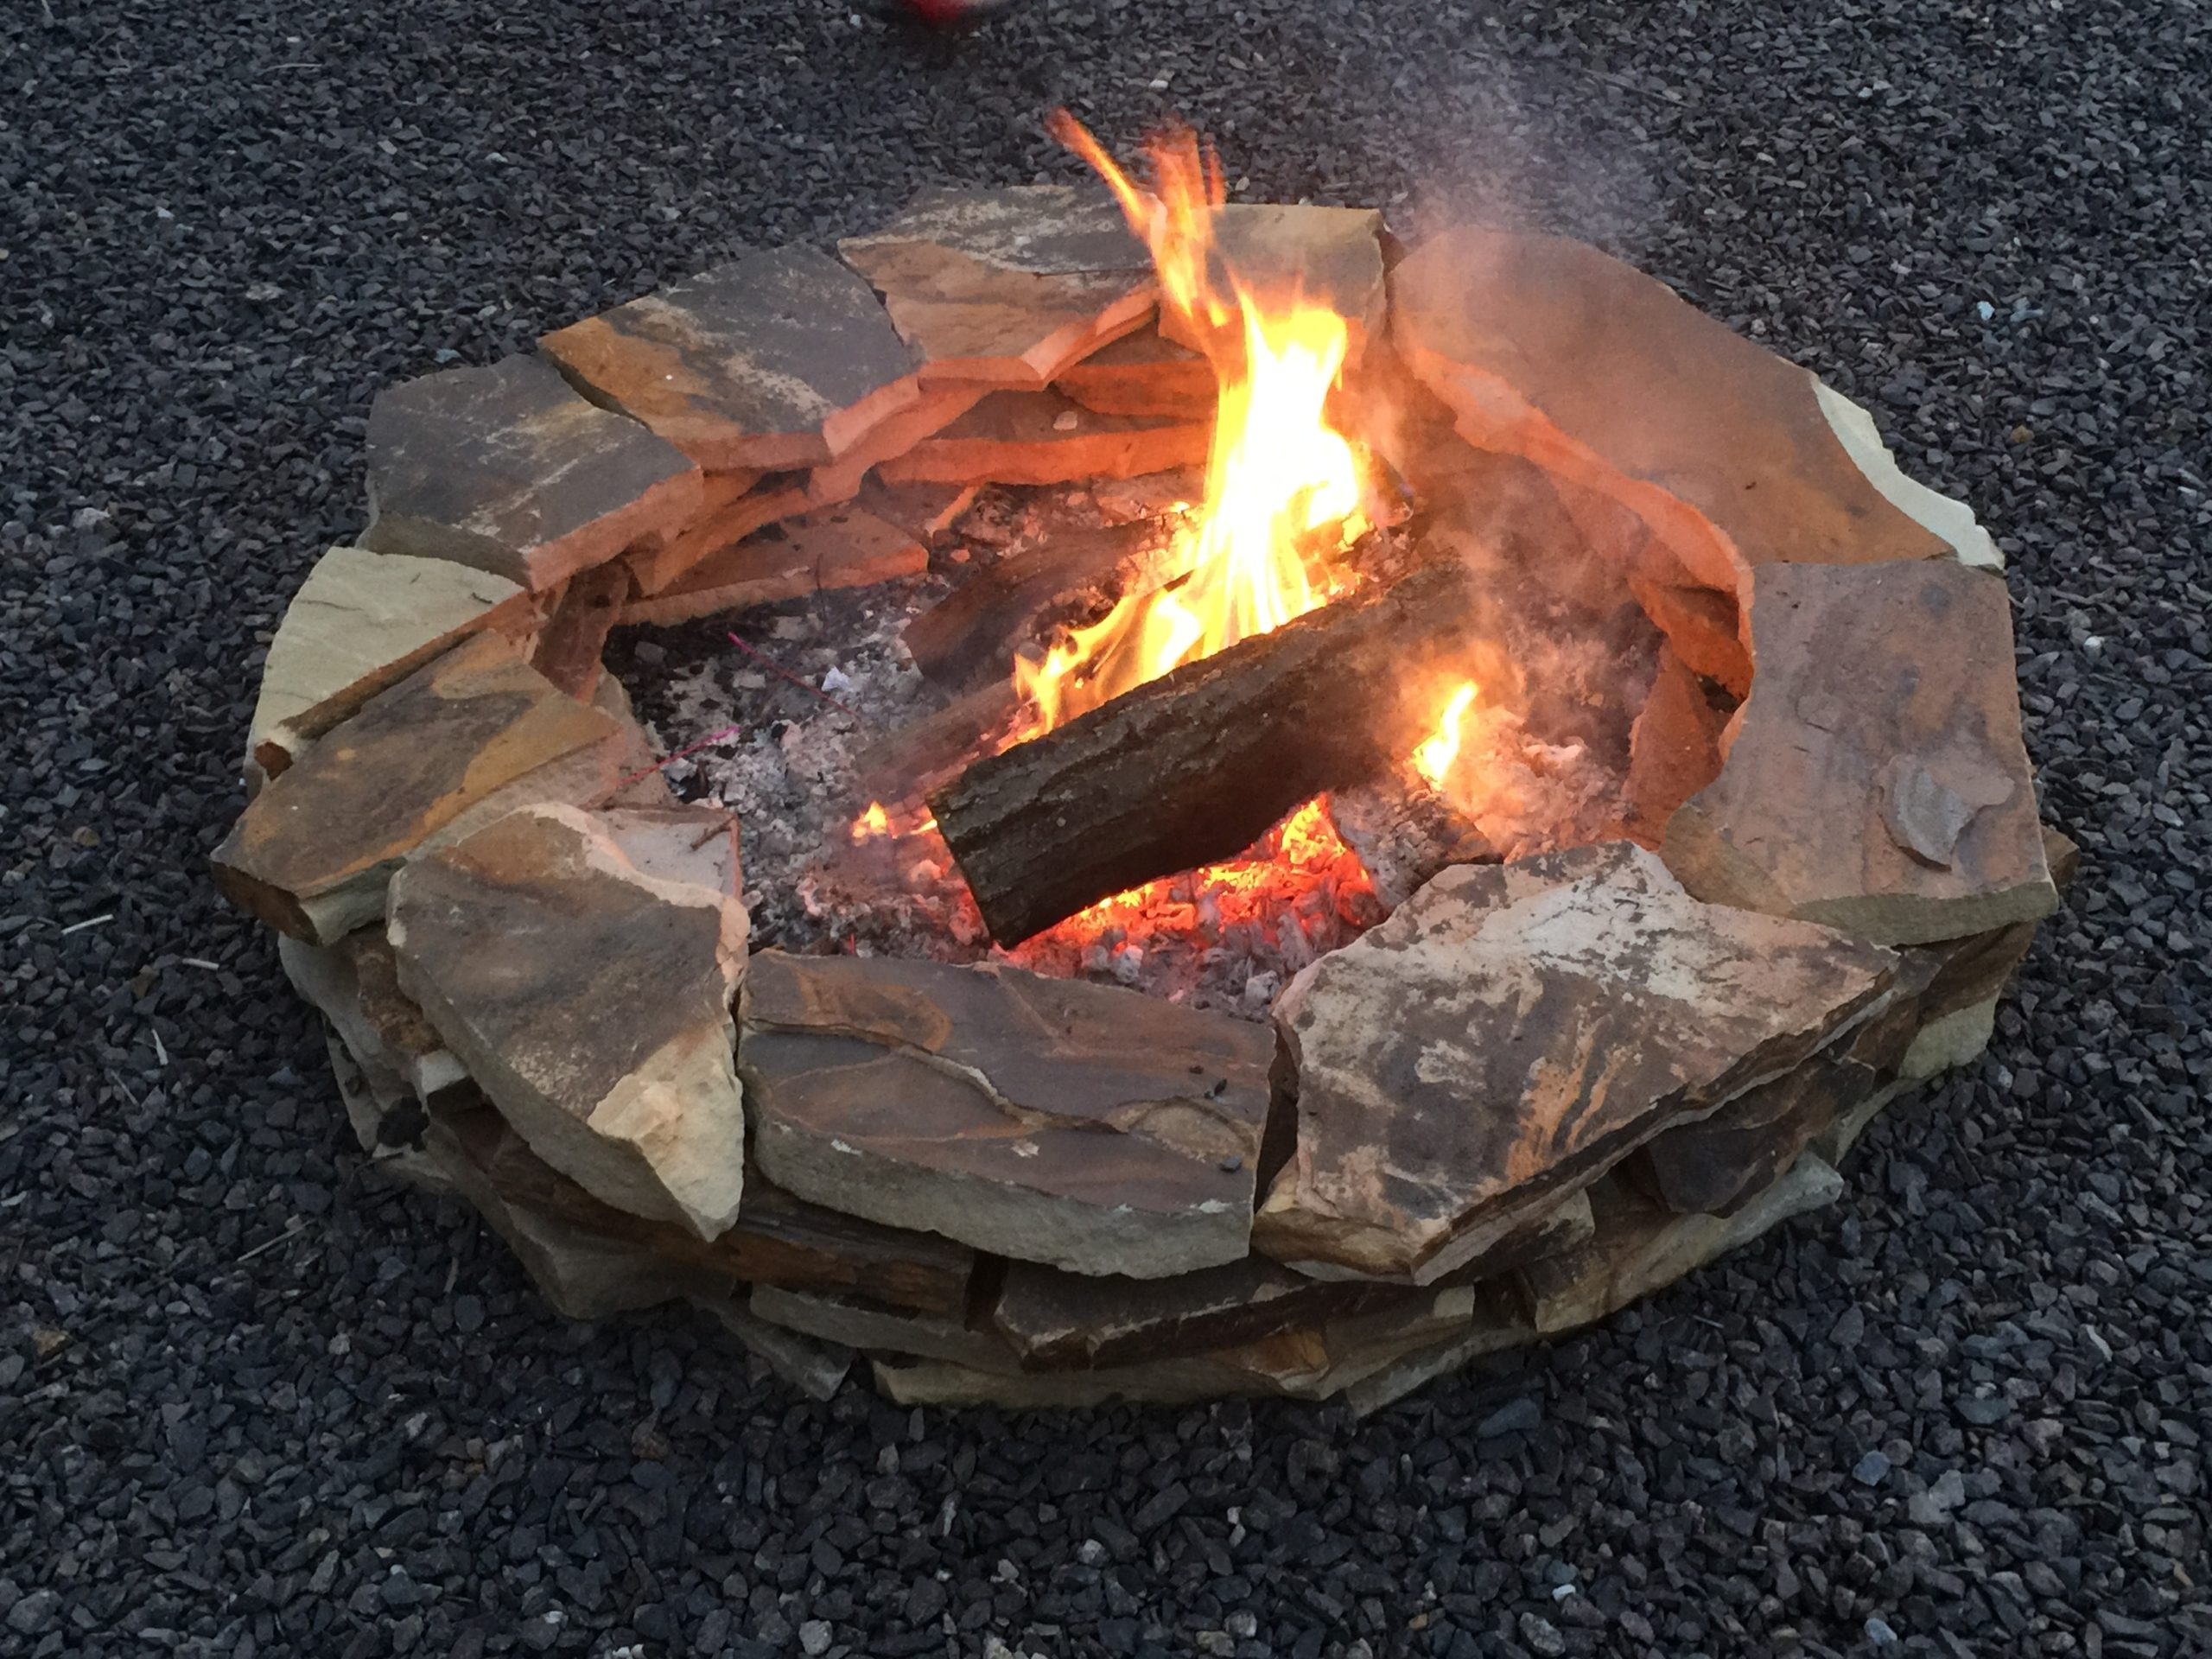 Fire burning in outdoor firepit